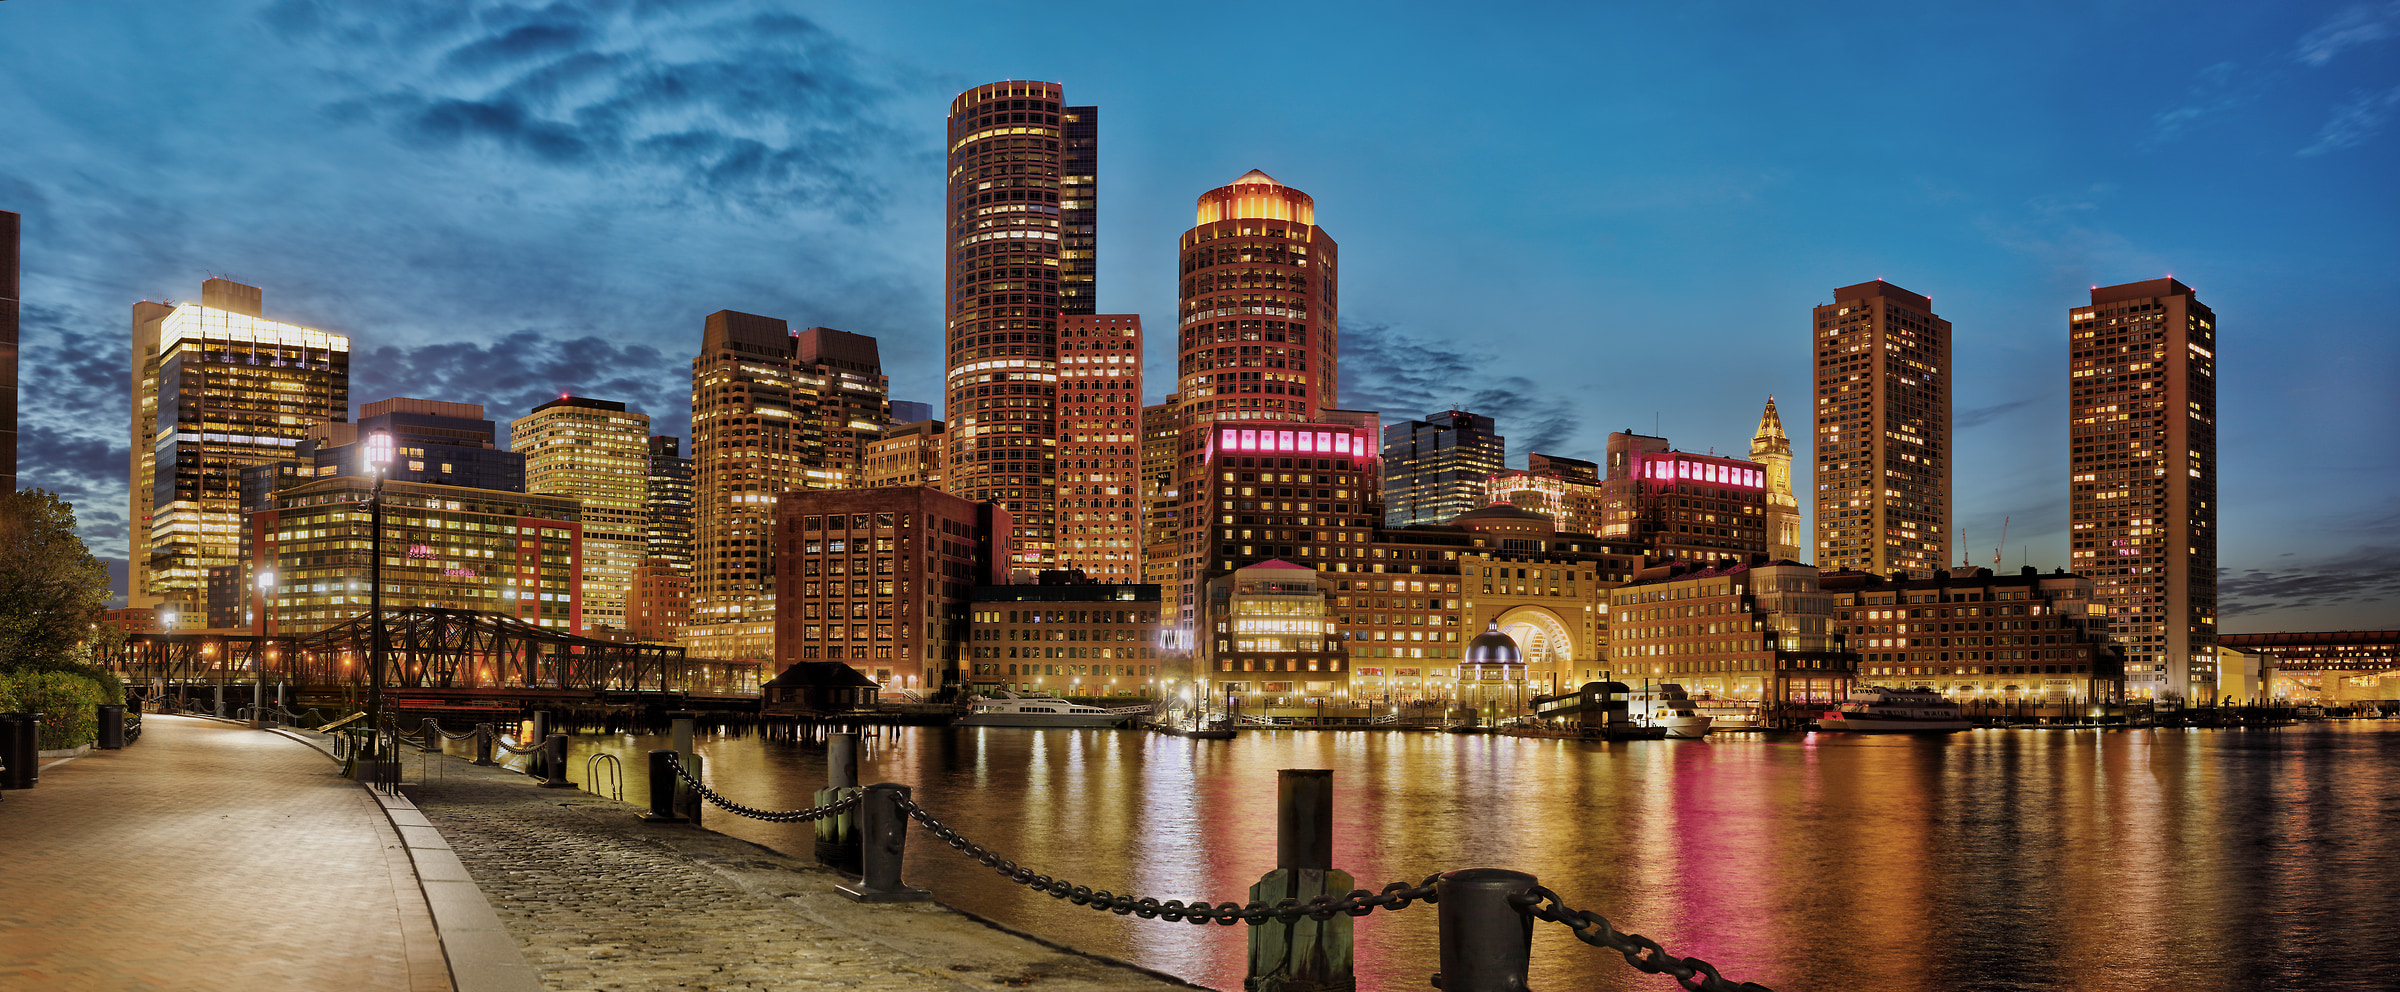 630 megapixels! A very high resolution, large-format VAST photo print of the Boston skyline at night; photograph created by Phil Crawshay in Fan Pier Park, Boston, Massachusetts